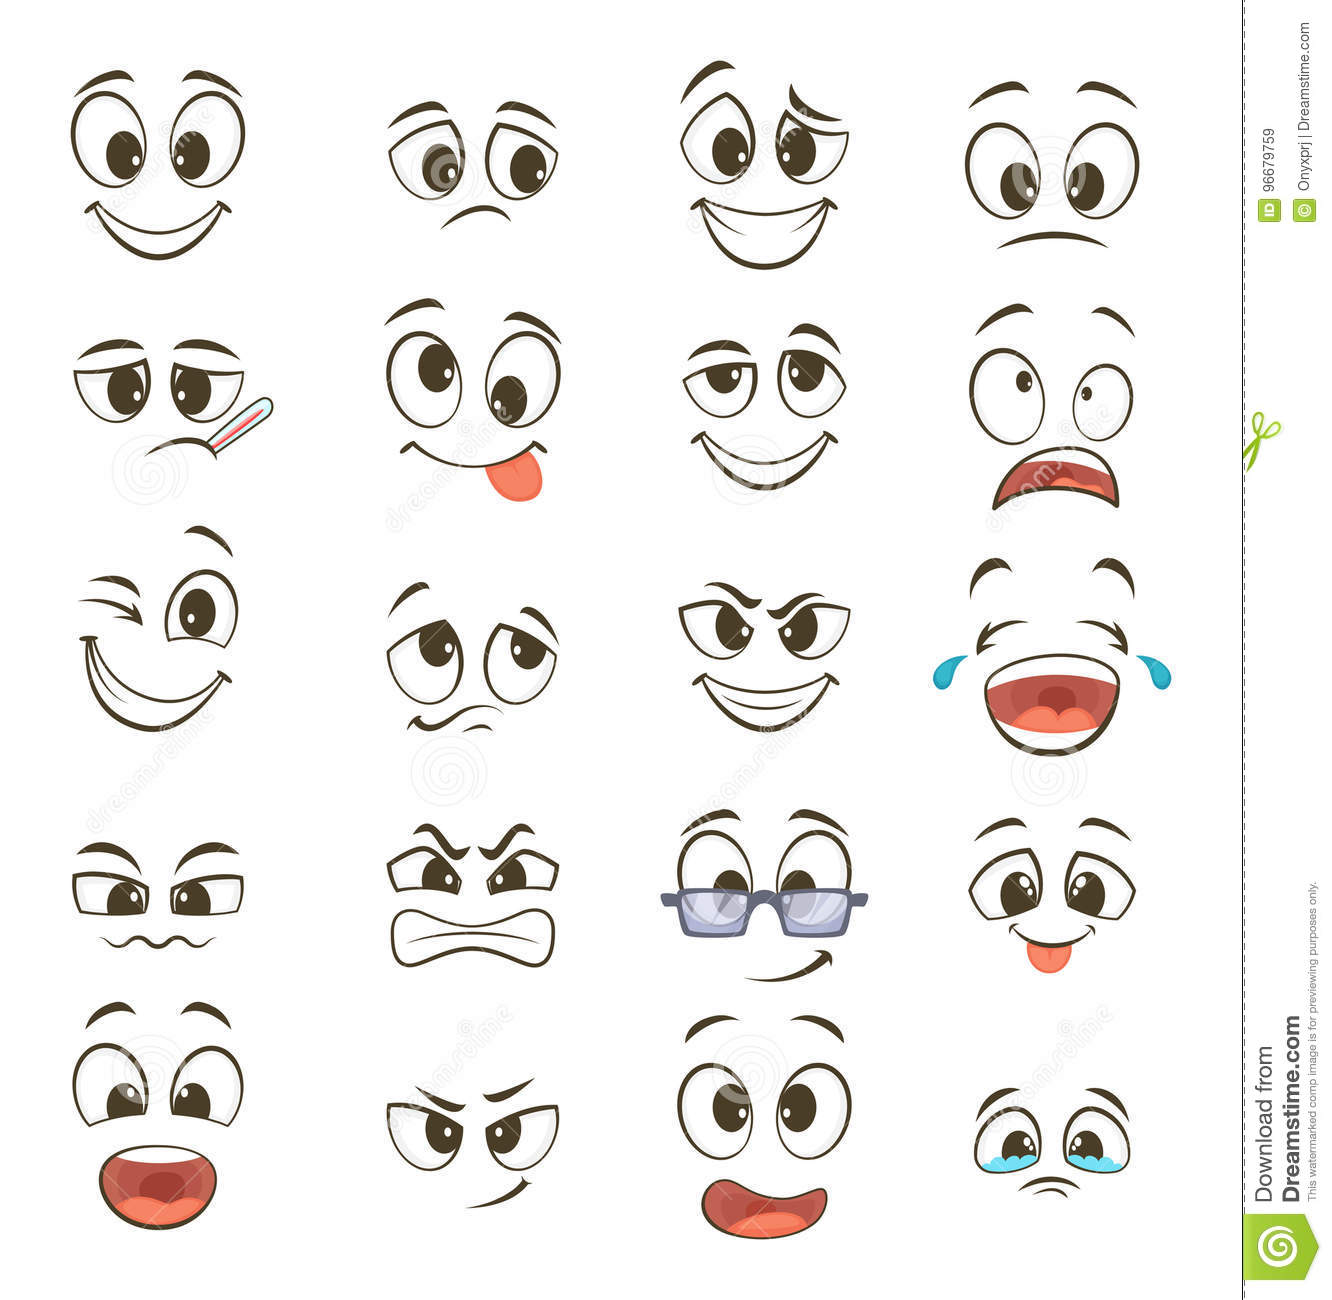 The question facial expressions caricatures suggest you